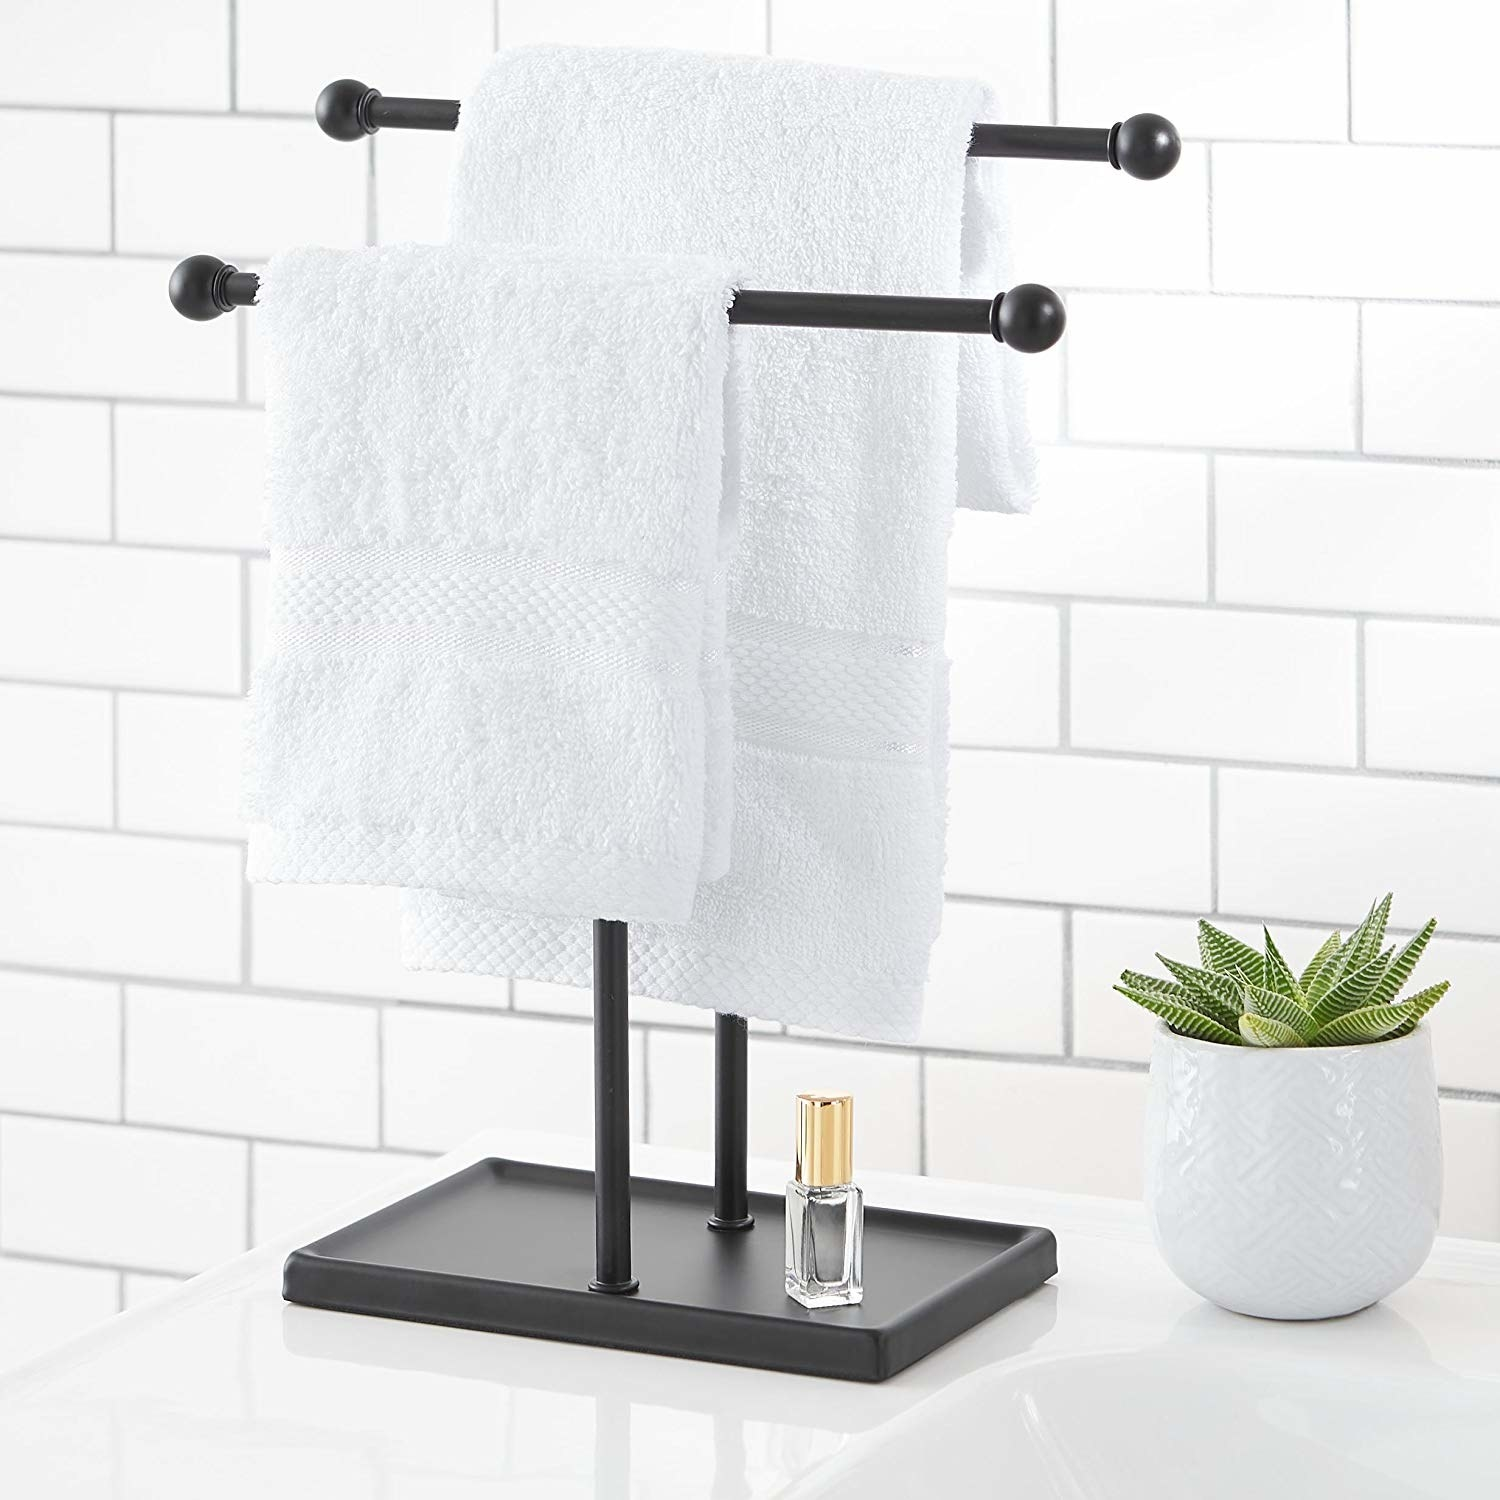 the two-tier towel holder in black with hand towels hanging from each one